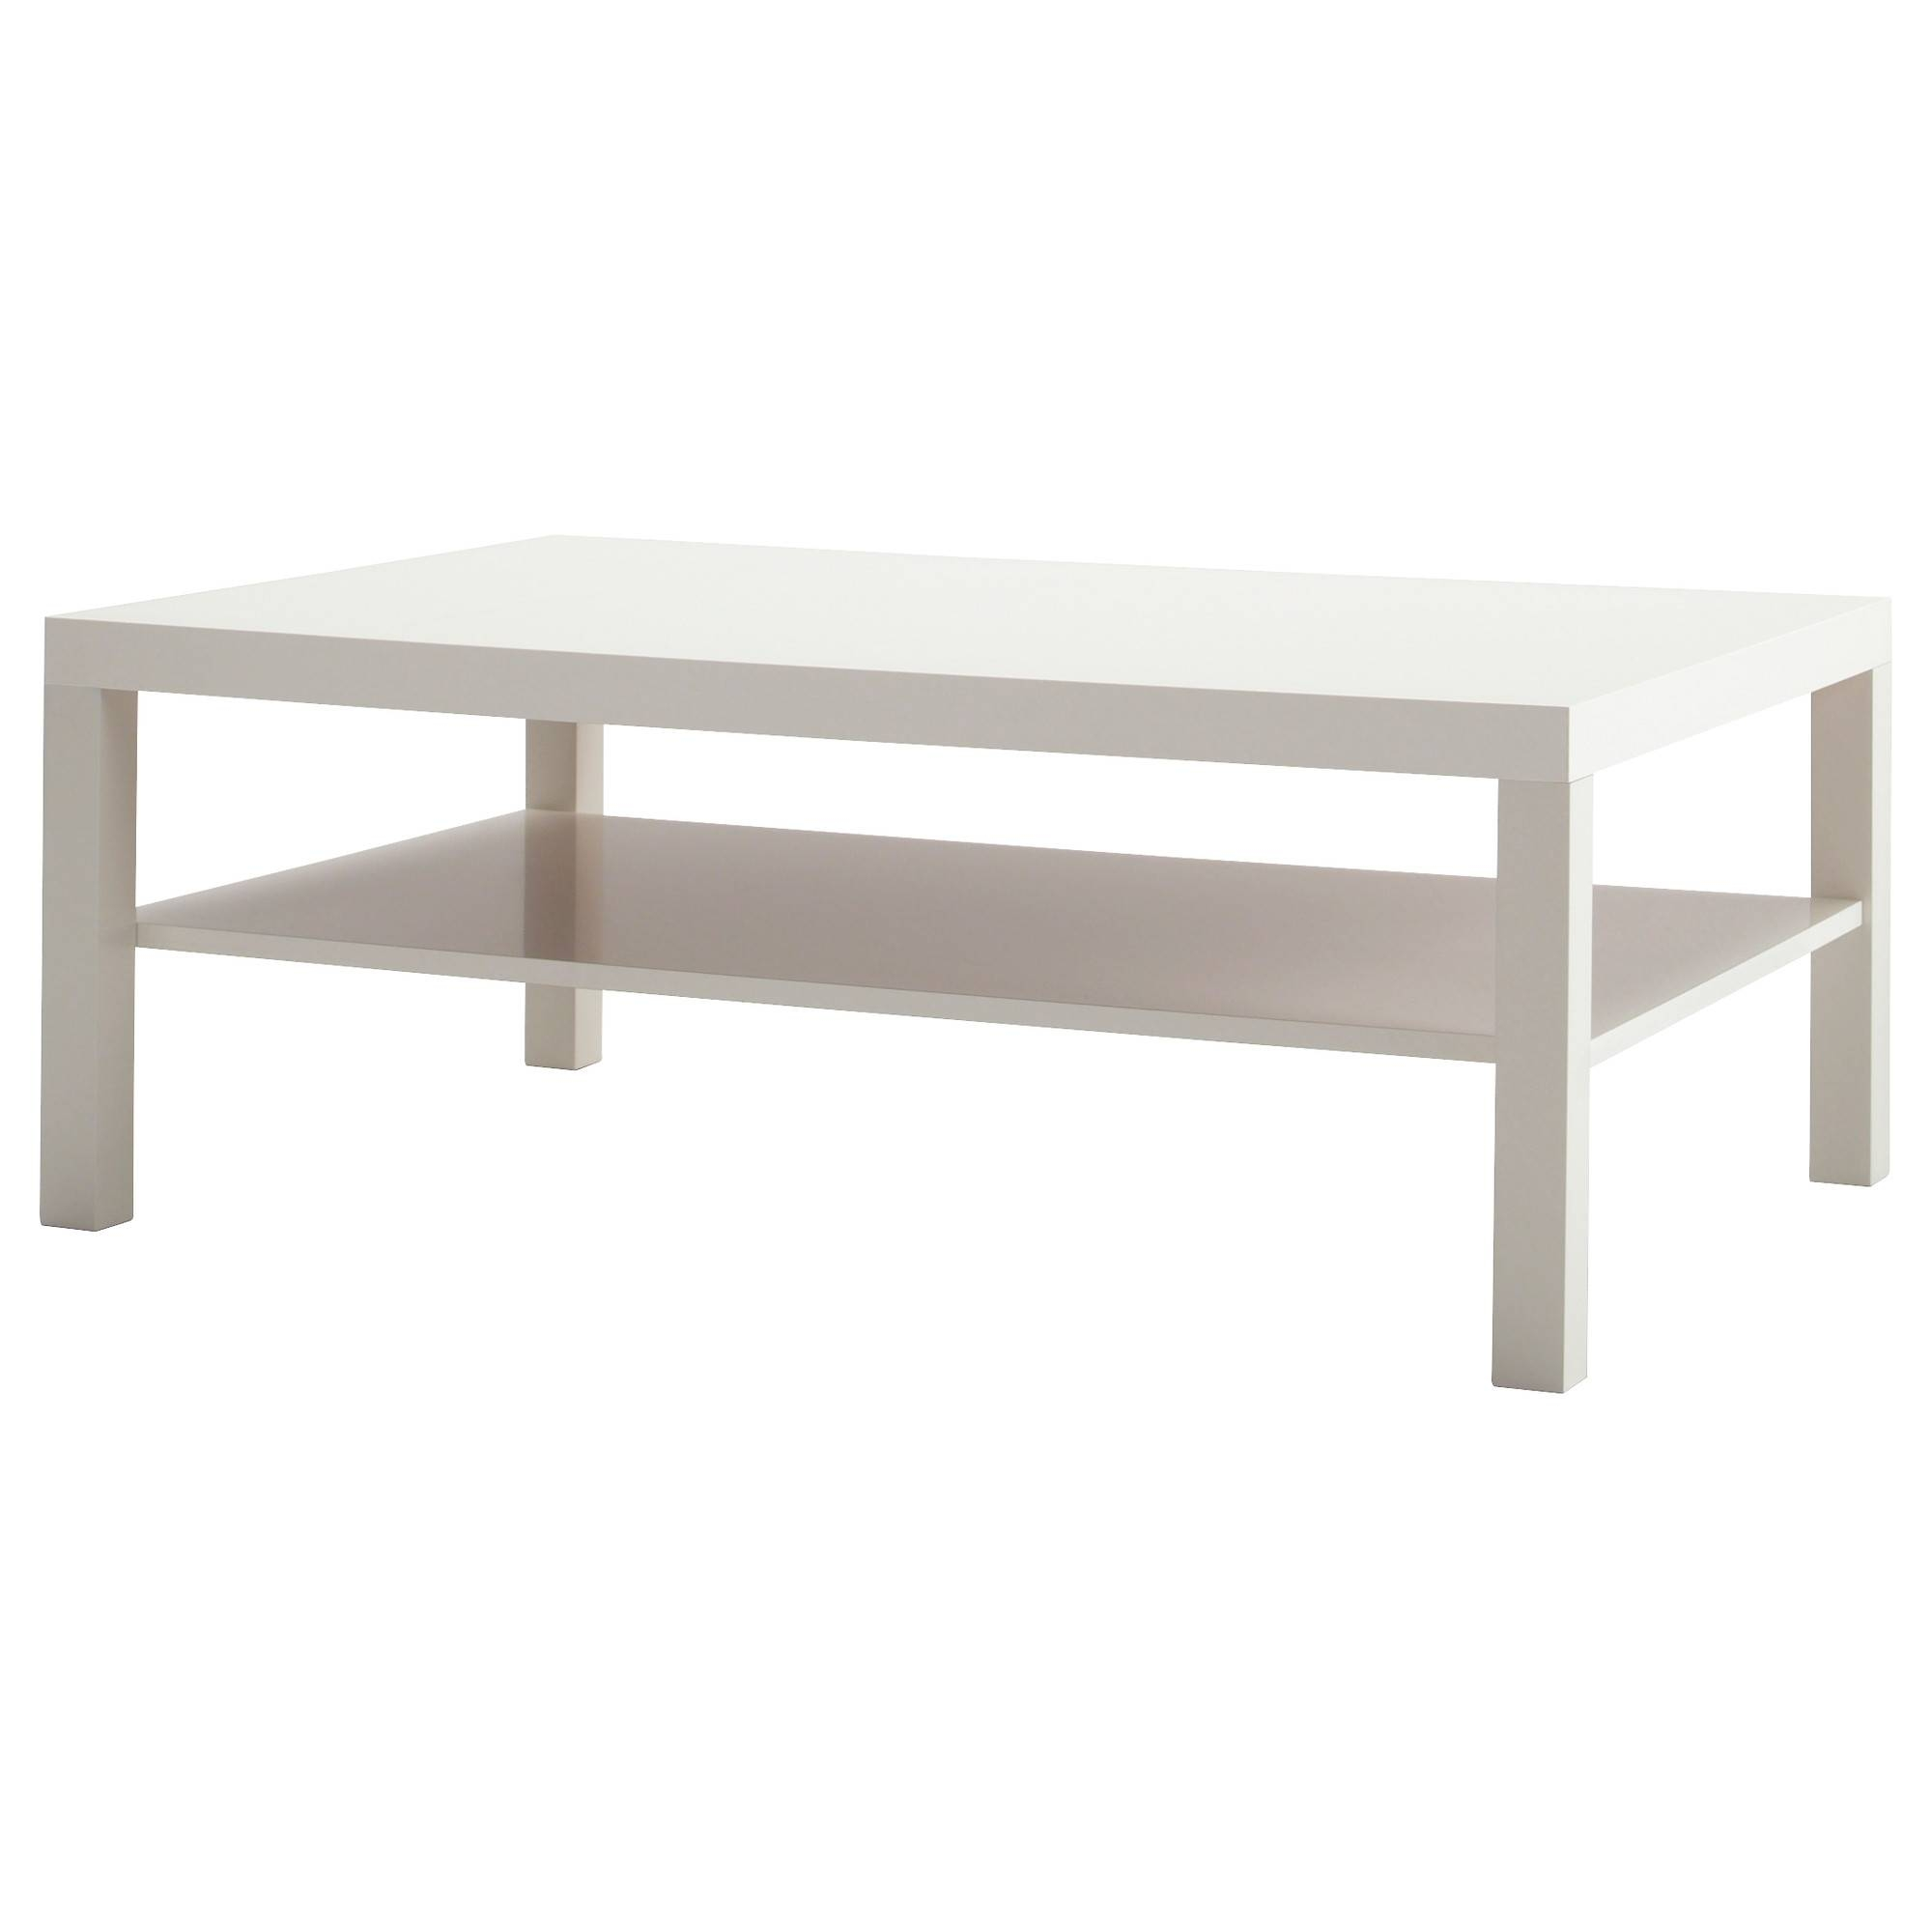 Coffee Tables - Glass & Wooden Coffee Tables - Ikea pertaining to White And Glass Coffee Tables (Image 8 of 30)